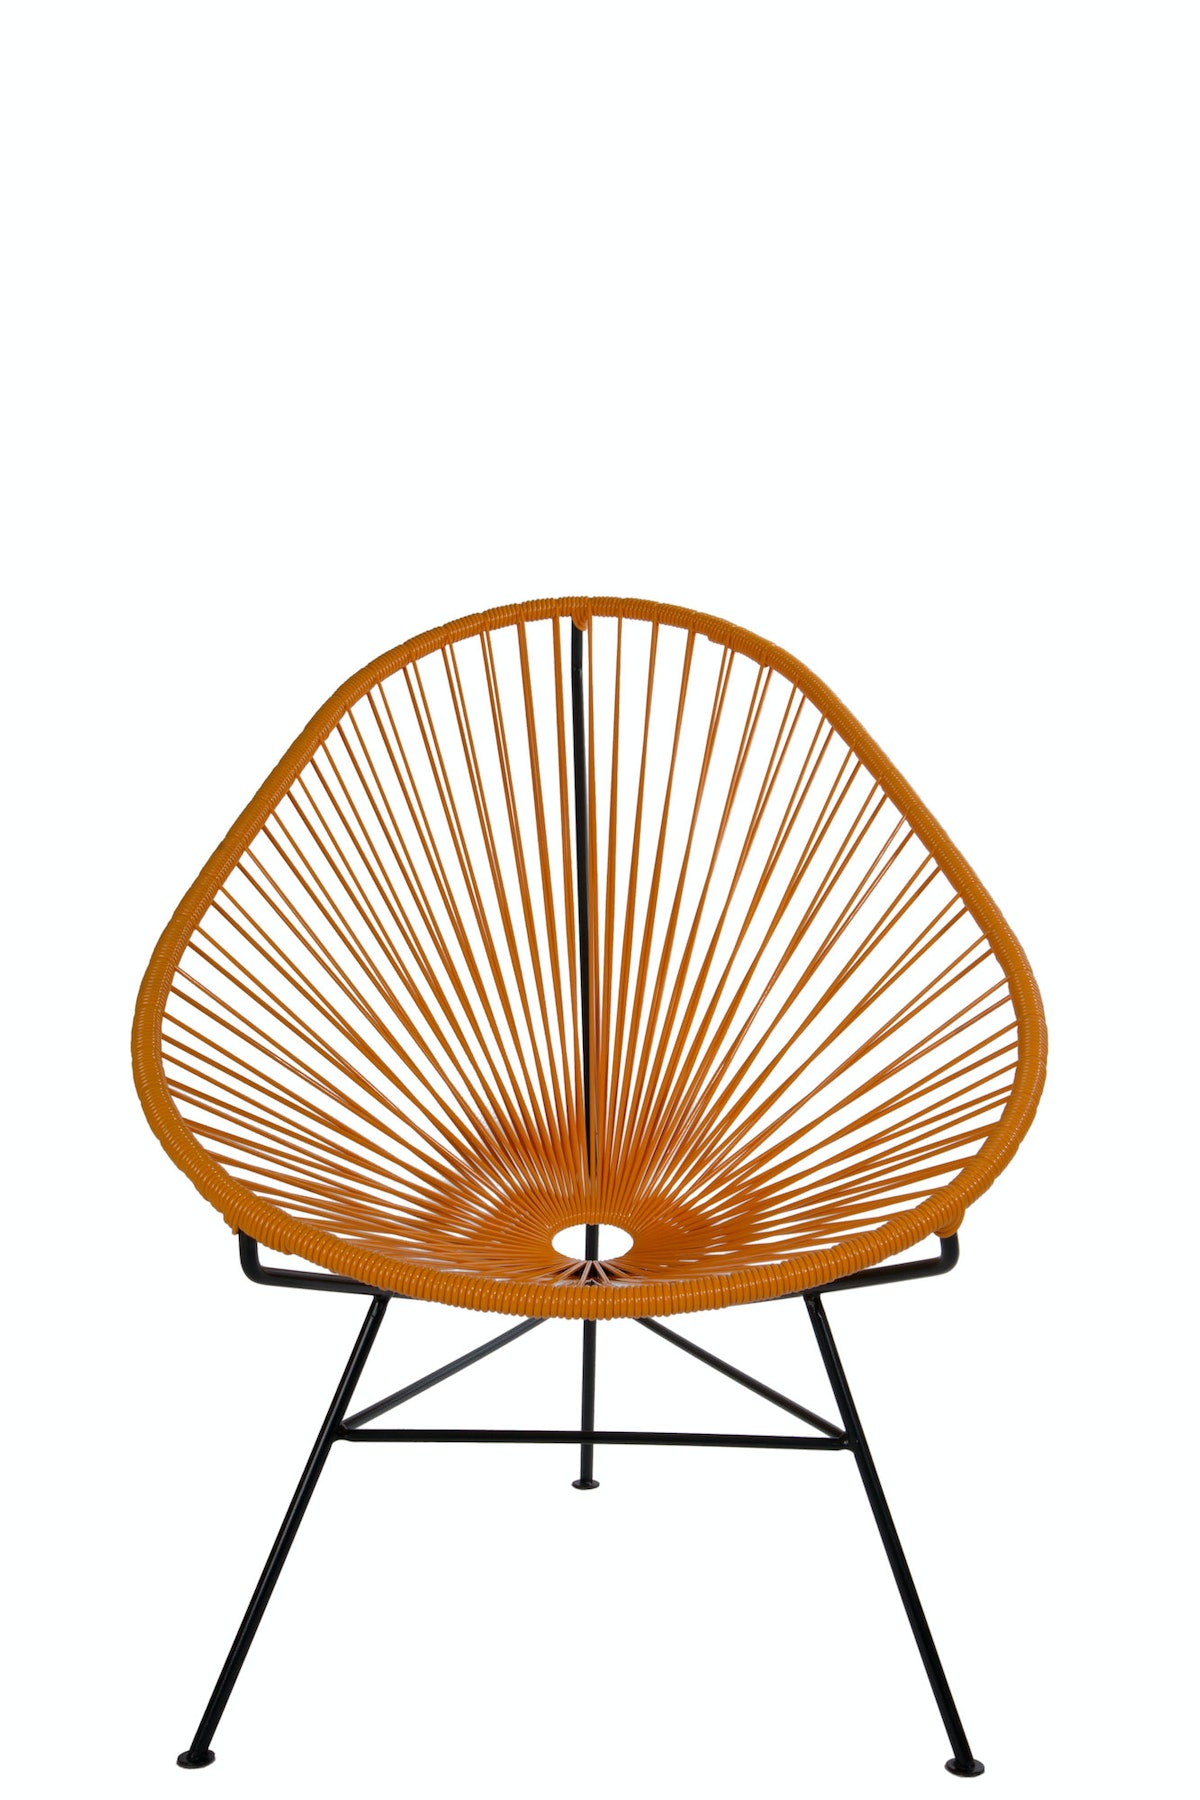 The Common Project chair, $299, [thecommonproject.net](http://thecommonproject.us/collections/frontpage/products/acapulco-lounge-chair-mustard).